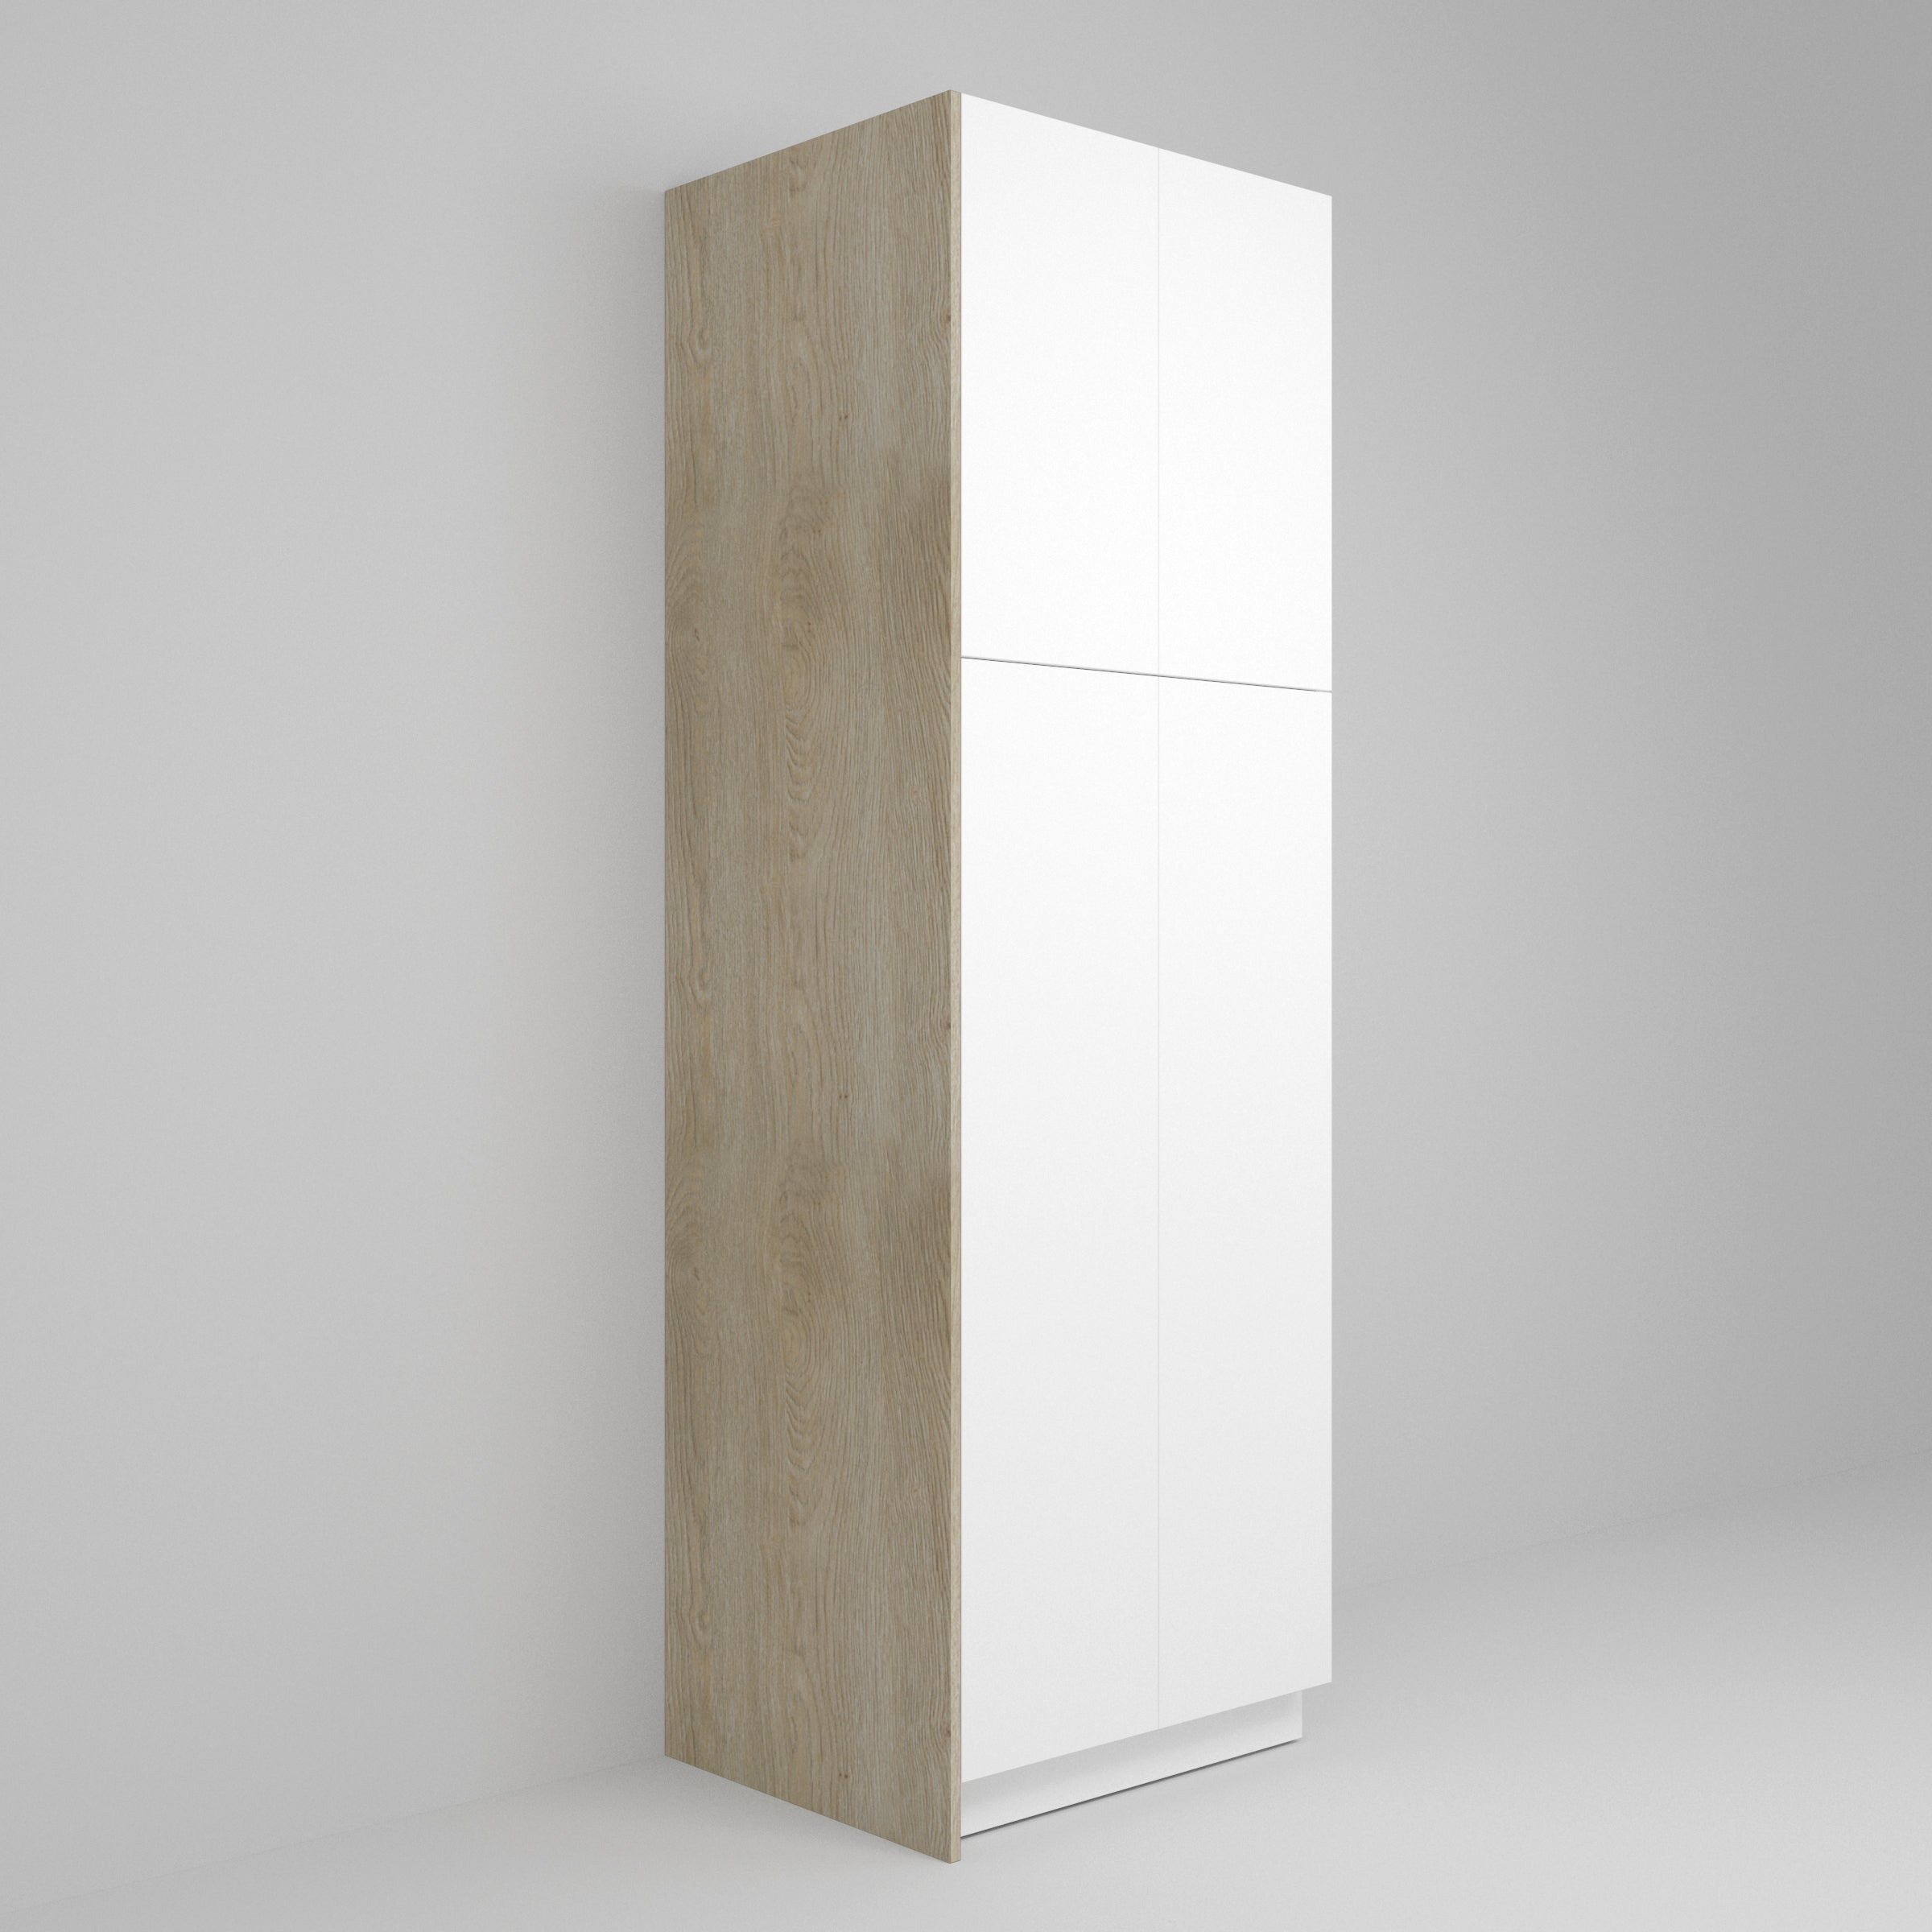 "Cove Chris Loves Julia Slab Tall Panel for Sektion 26"" x 95"" / Cove"